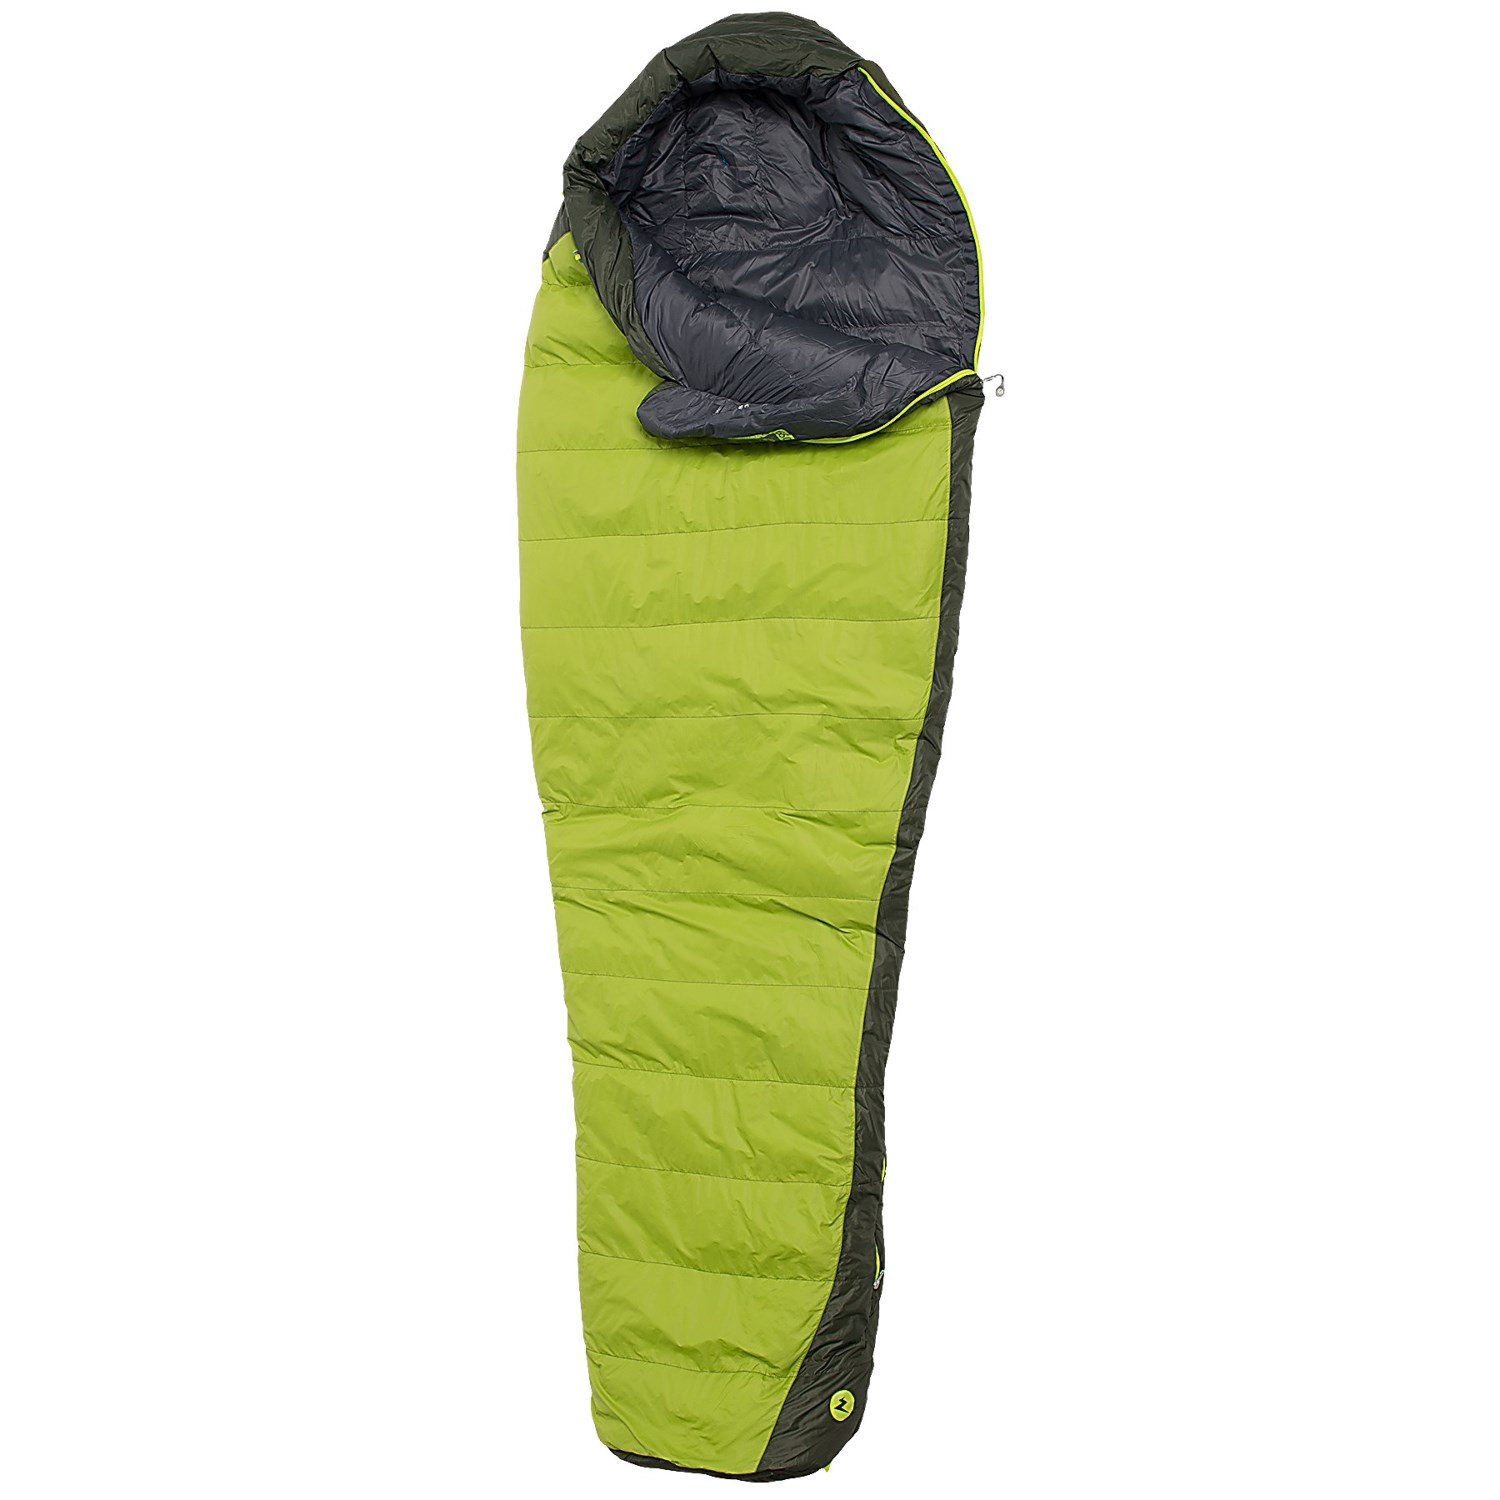 Marmot 20°F Kenosha Down Sleeping Bag - 650 Fill Power, Mummy